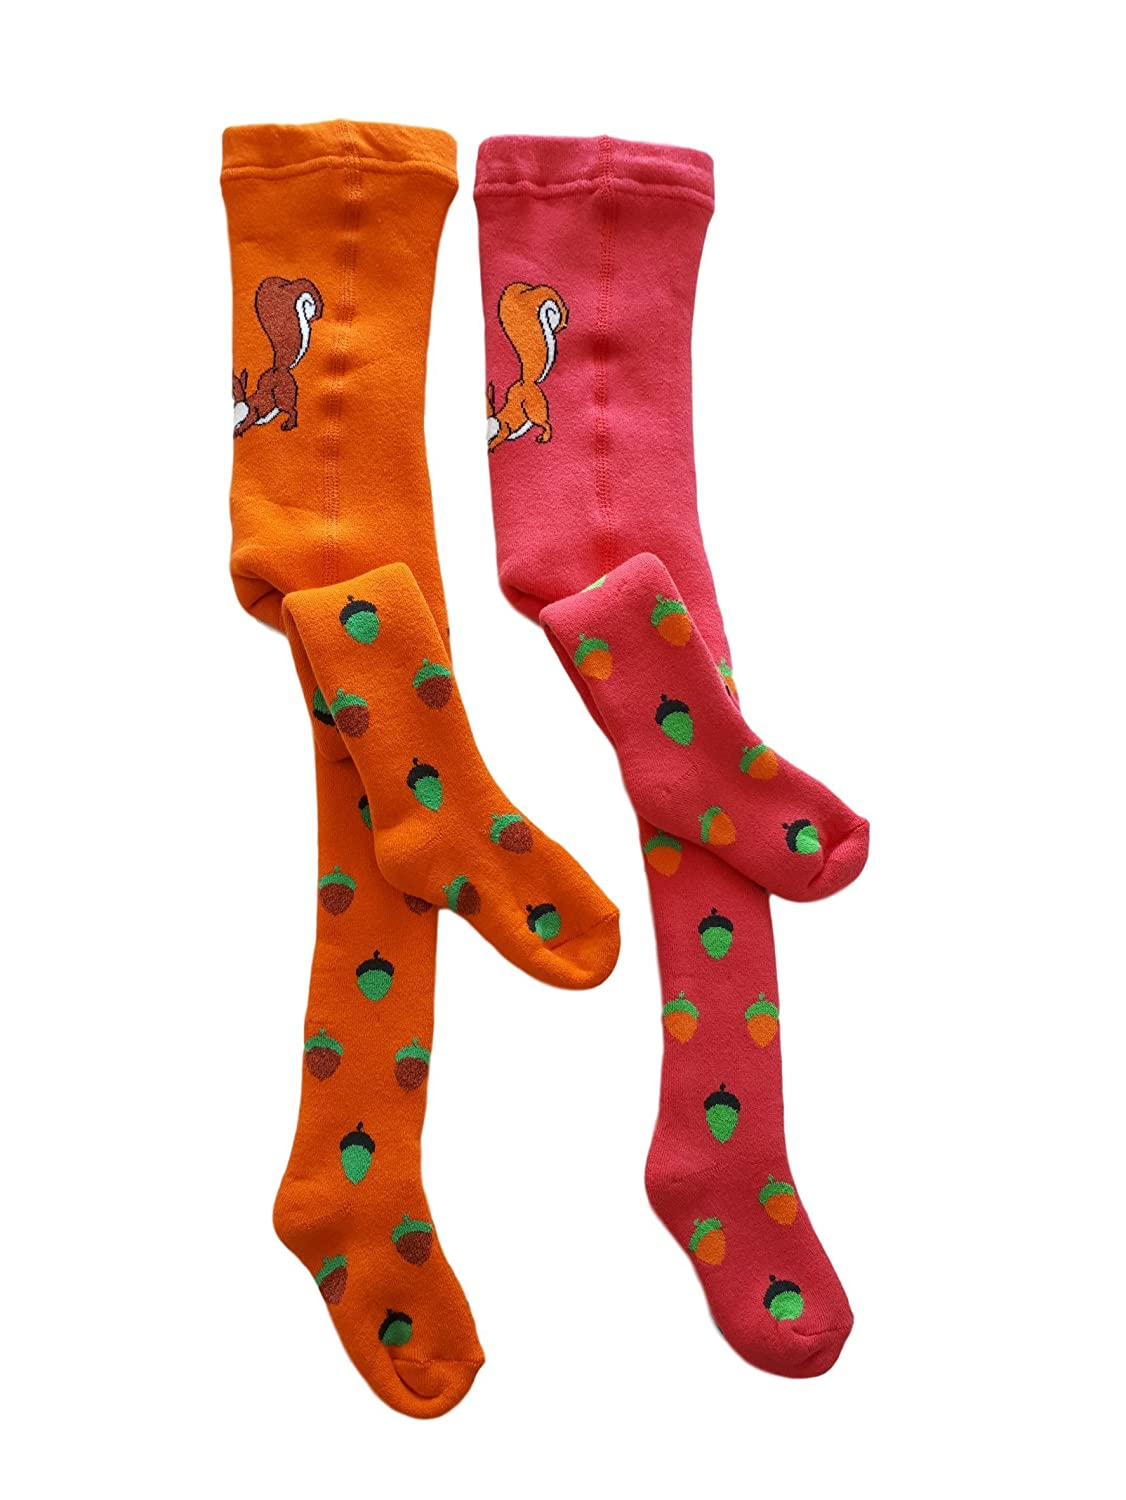 SanKleo Baby Girls Cotton Warm Tights (2 Pack) Orange Pink Squirrel Comfy And Cute Fits 18-24 Months Baby Girl